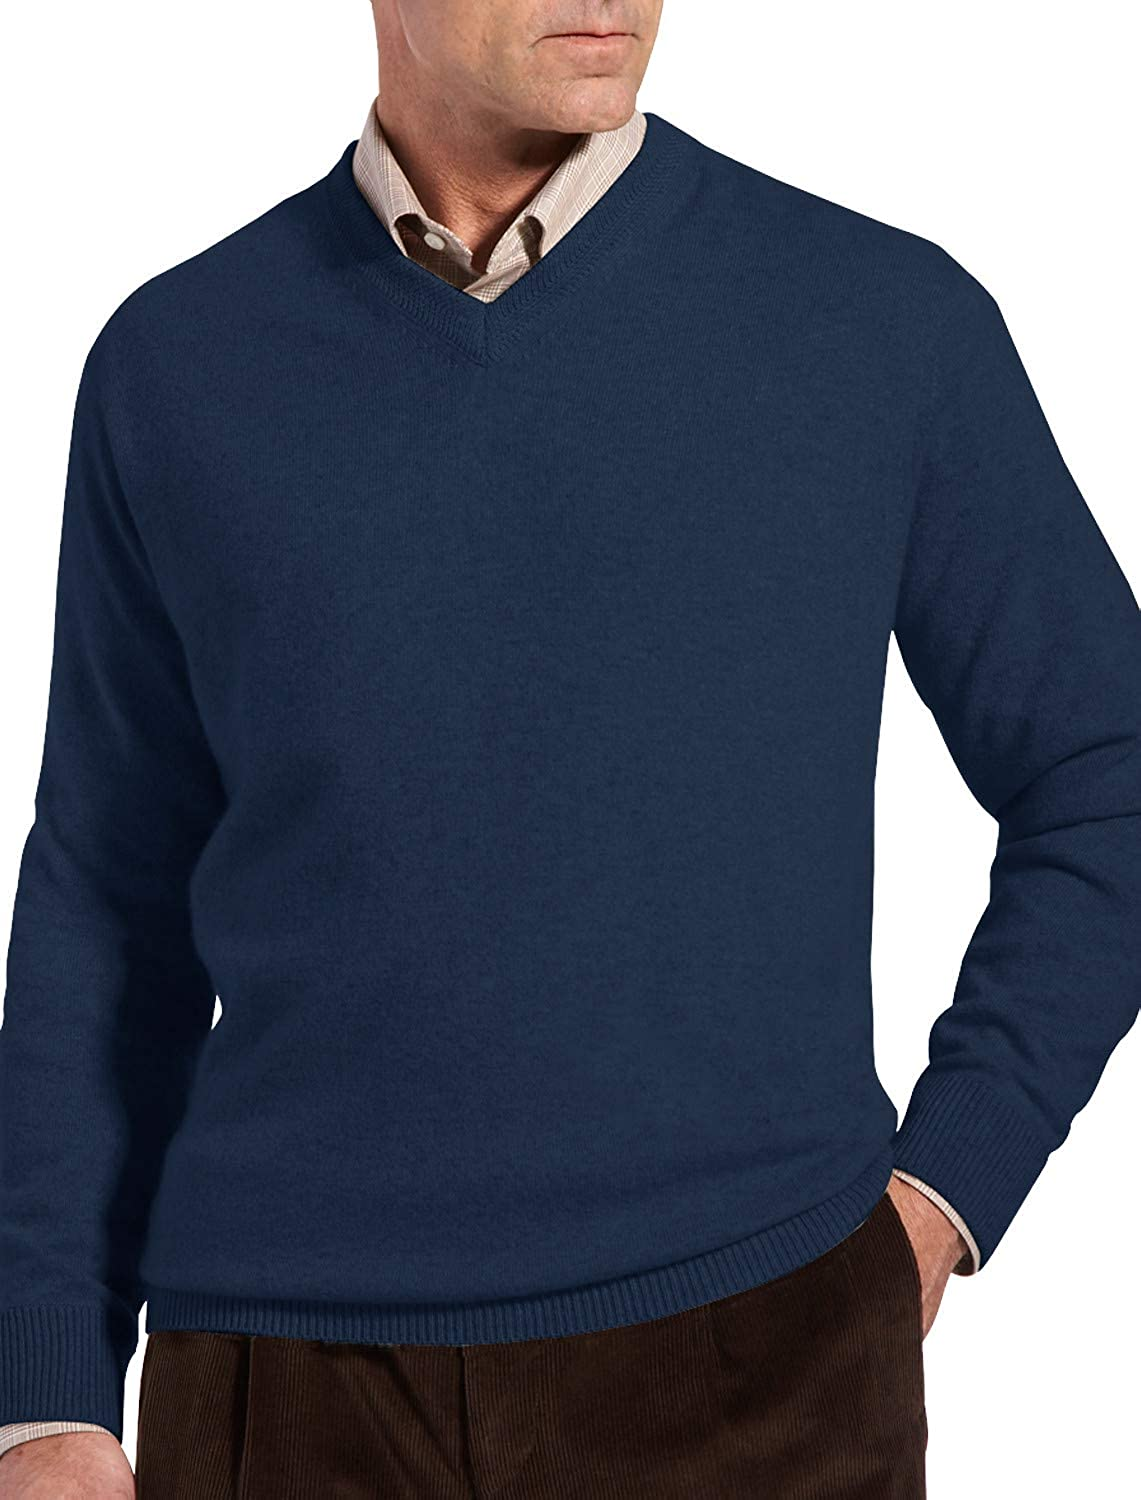 Rochester by DXL Big and Tall Cashmere V-Neck Sweater